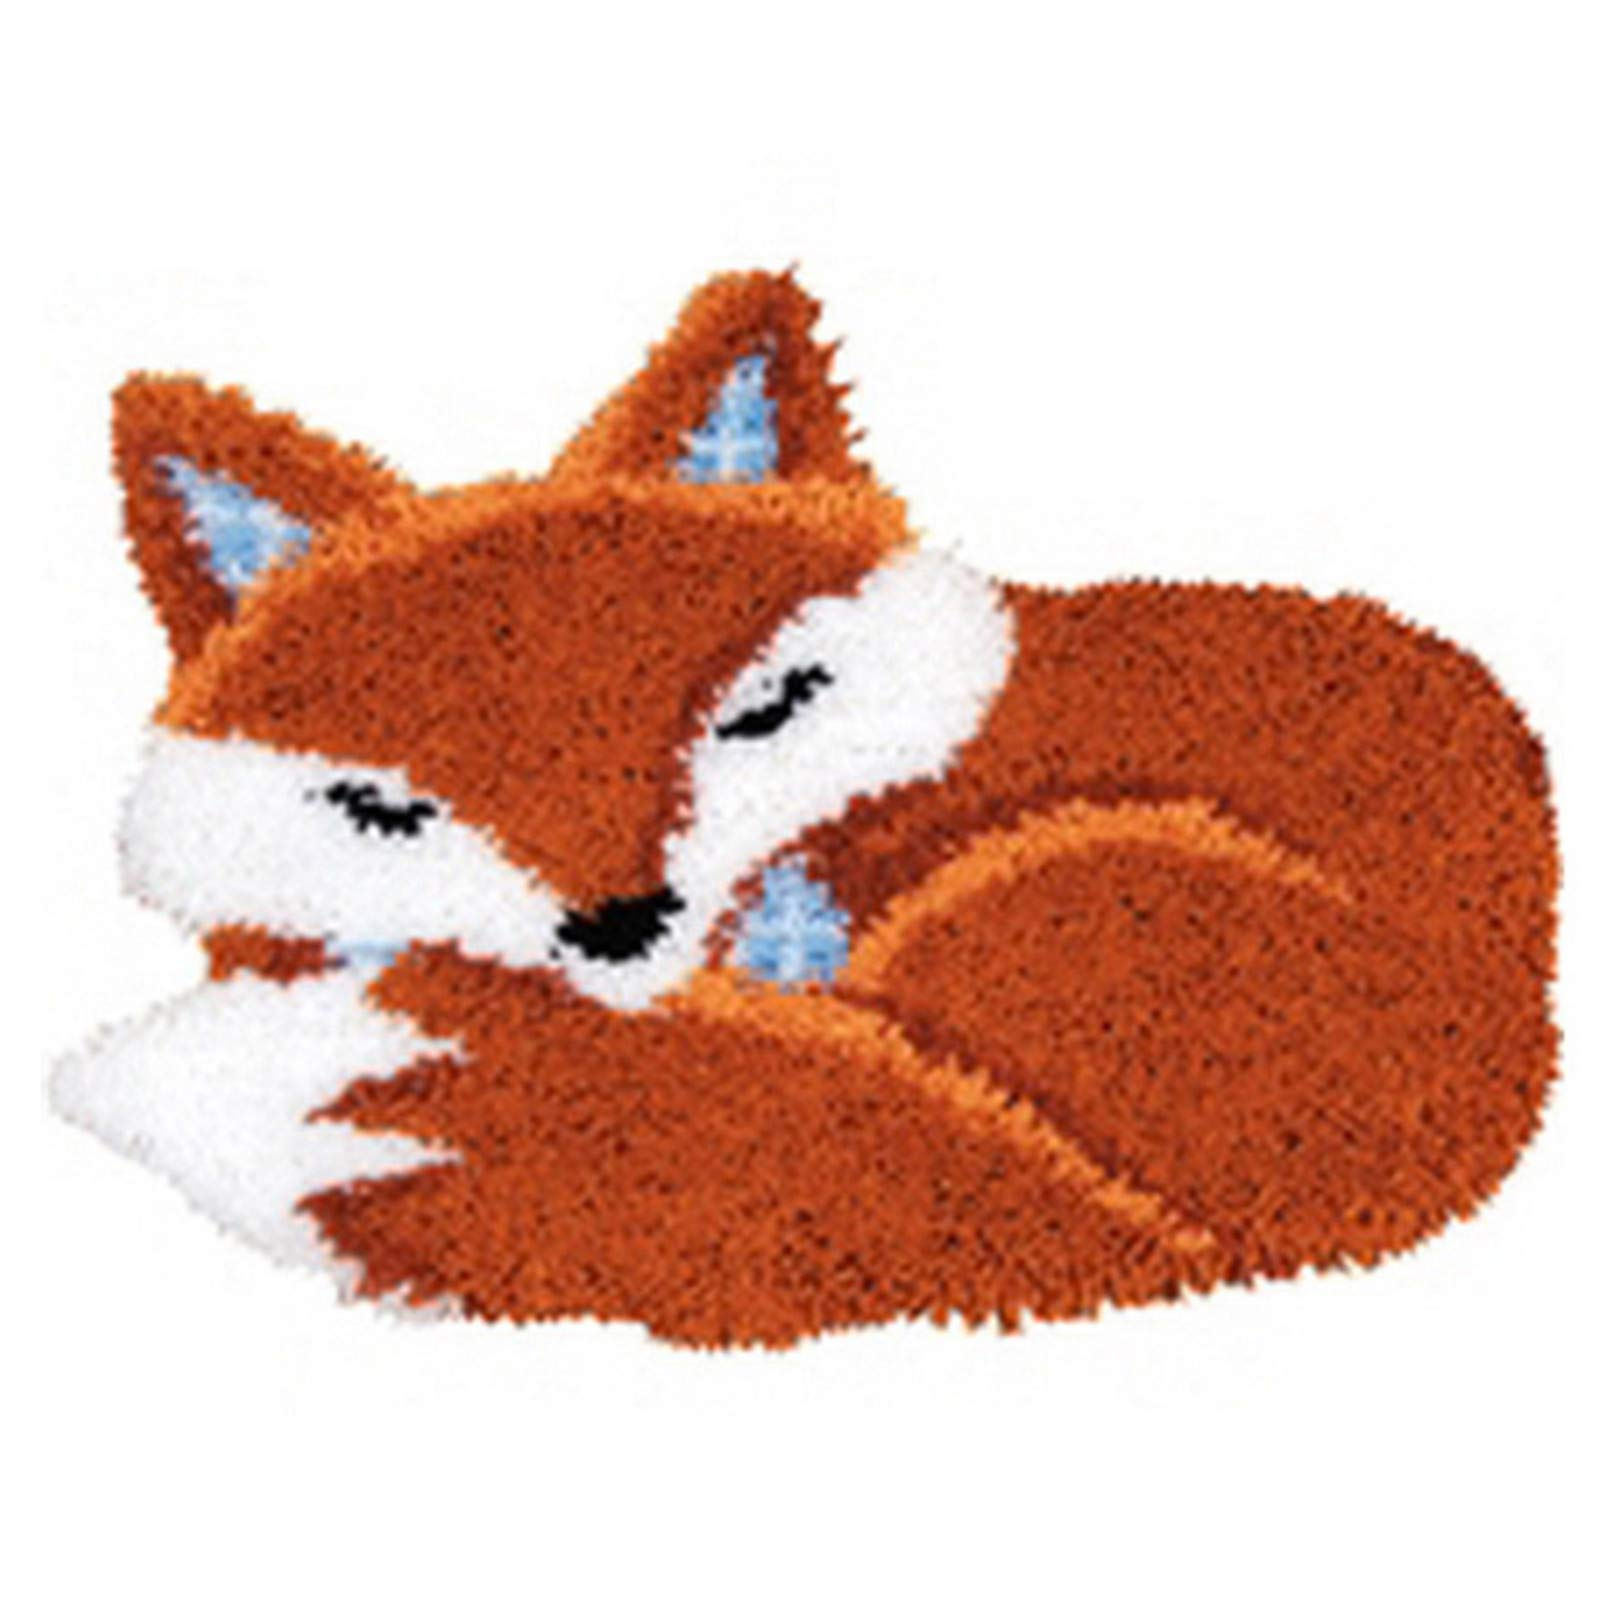 "Ur HQCC Latch Hook Kits Rug DIY Crochet Yarn Kits 3D Fox Pattern Crochet Needlework Crafts for Kids and Adults, 20.5"" X 15"""